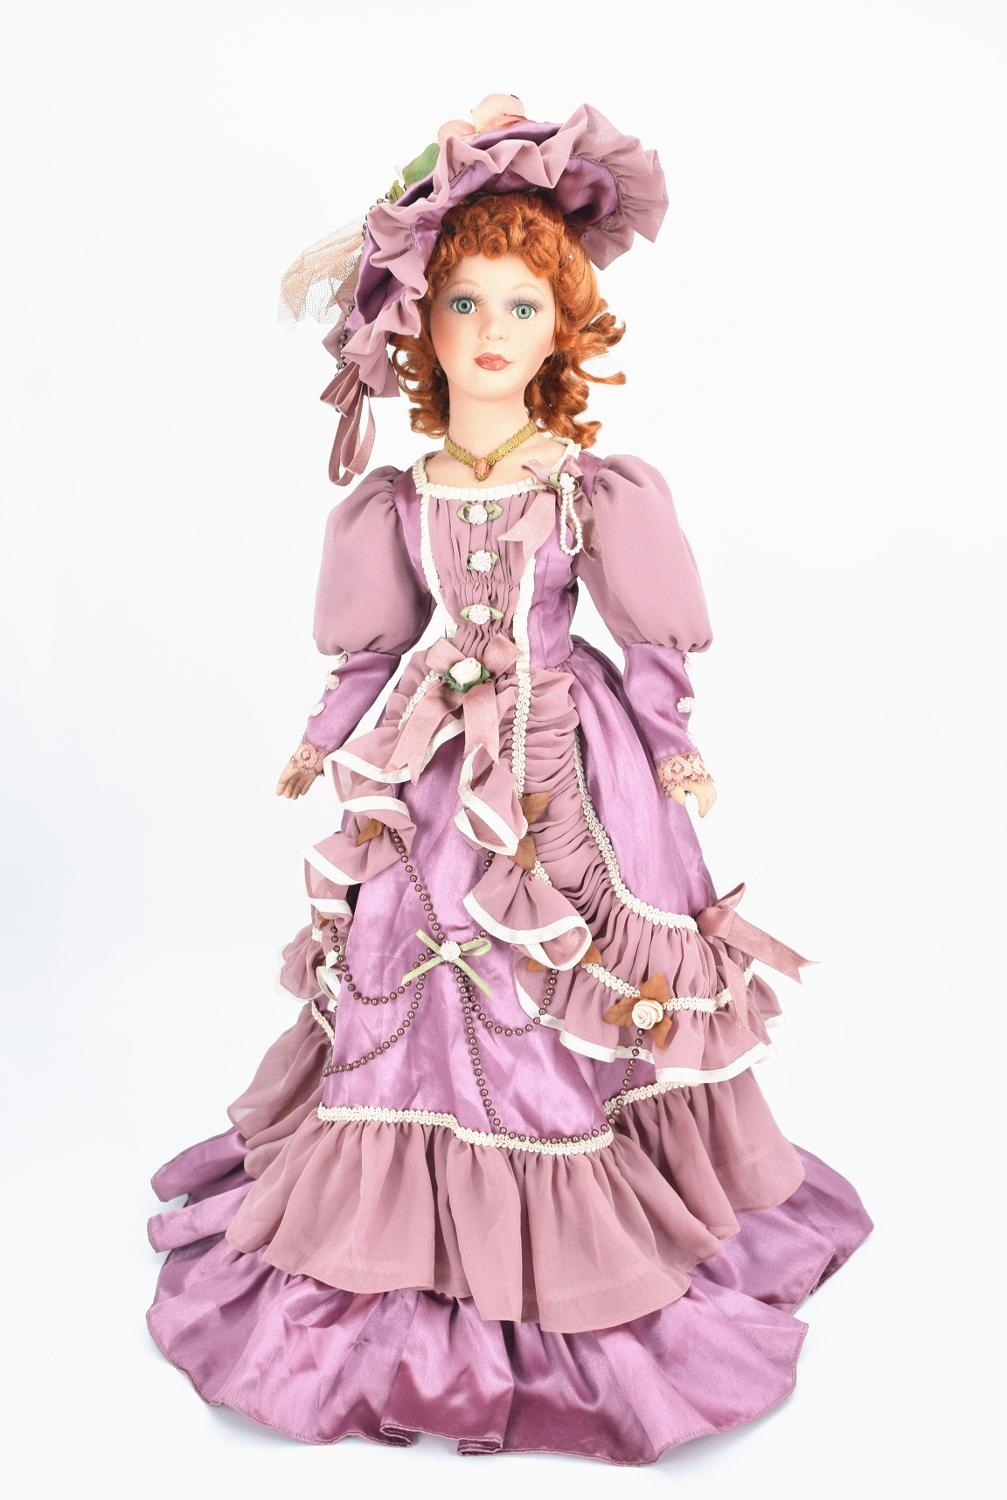 60cm Vintage Victoria Porcelain Doll Lifelike Style Collection Ceramics Doll Birthday Christmas Gift Artistic Home Decoration